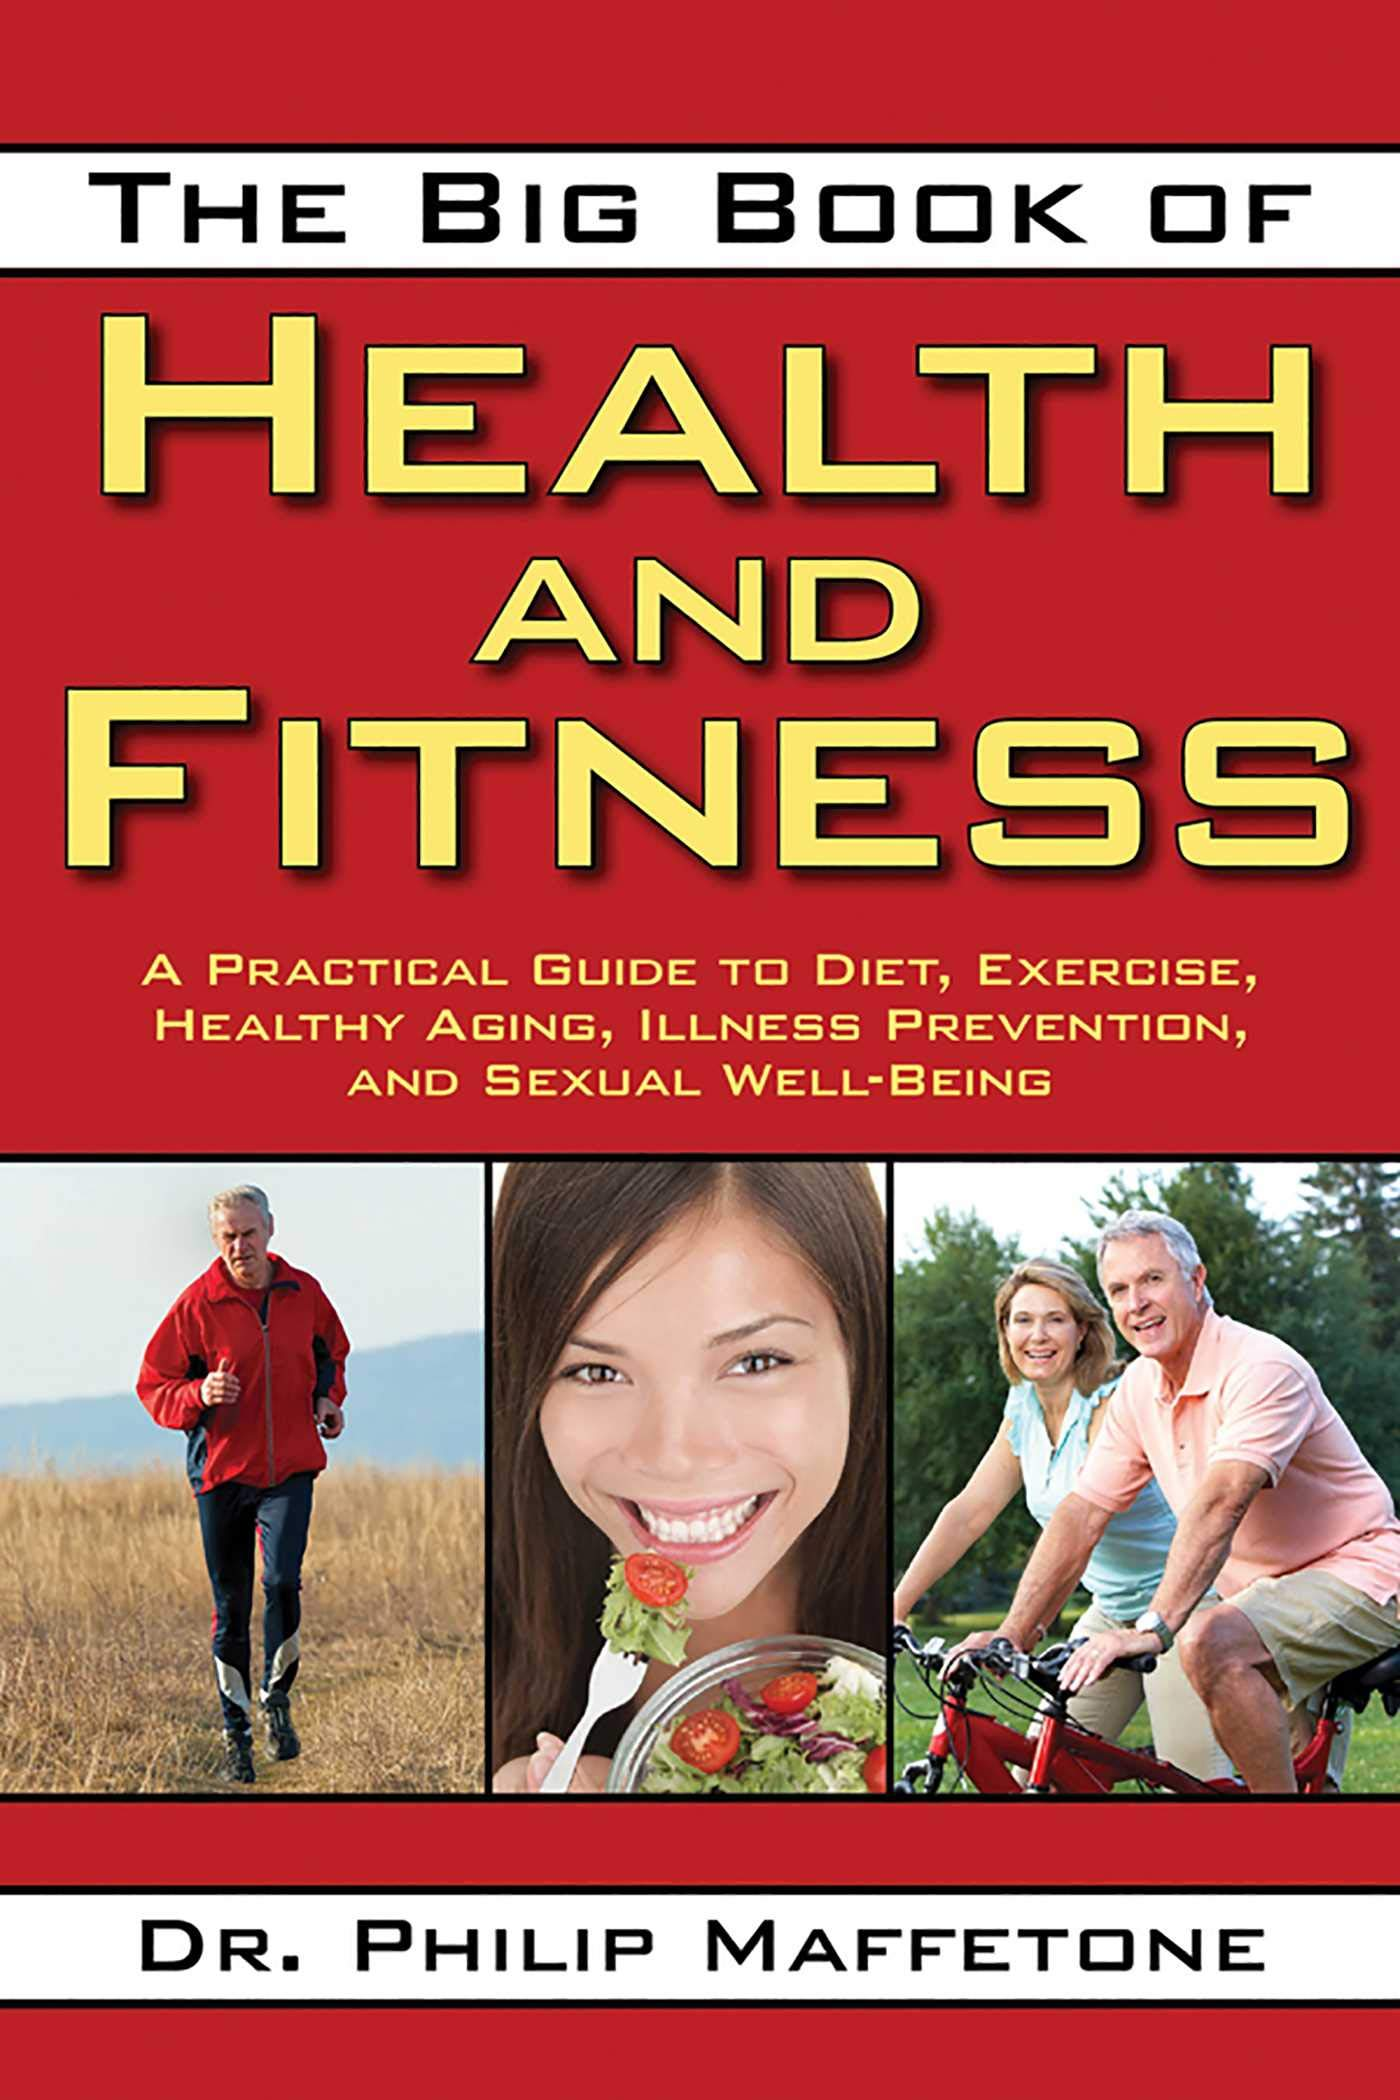 Image OfThe Big Book Of Health And Fitness: A Practical Guide To Diet, Exercise, Healthy Aging, Illness Prevention, And Sexual Wel...